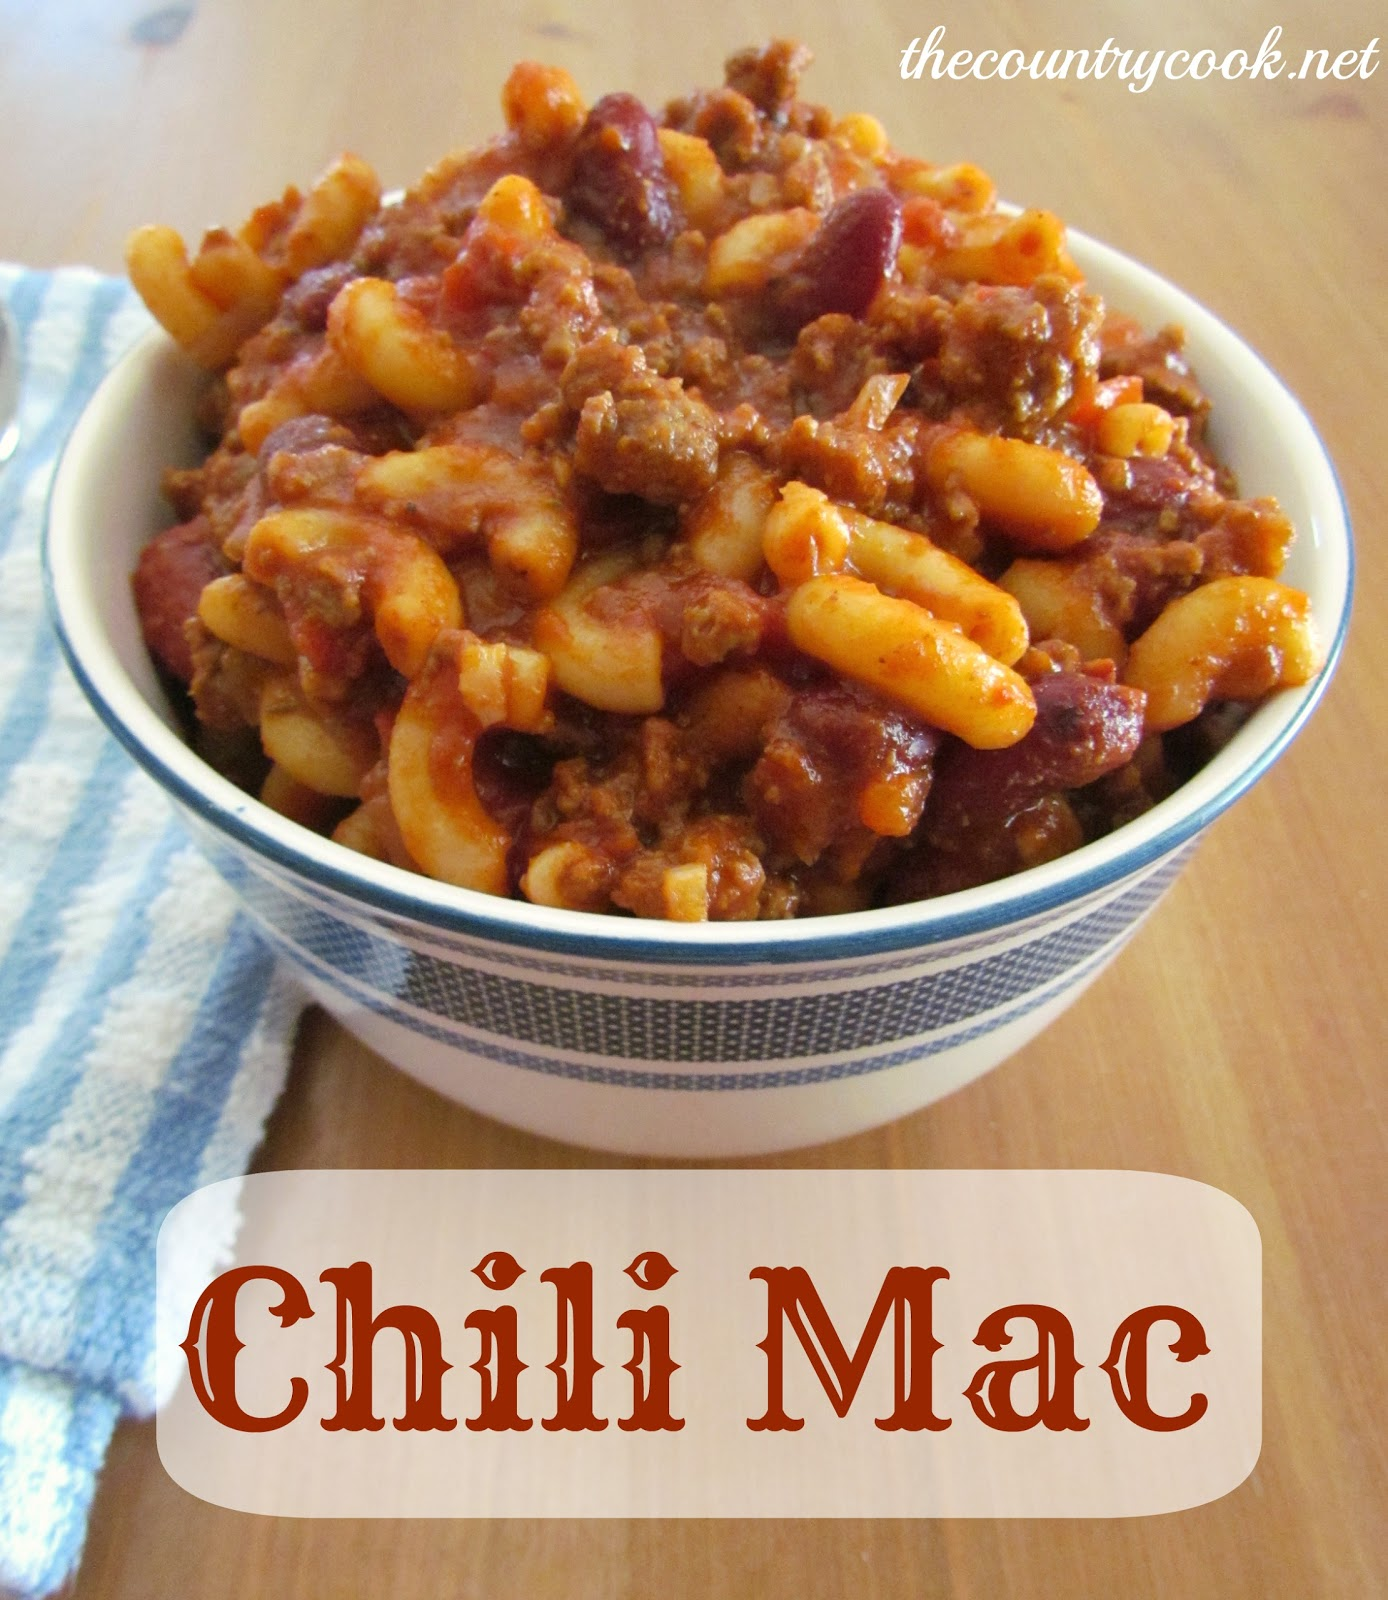 Chili Mac - The Country Cook